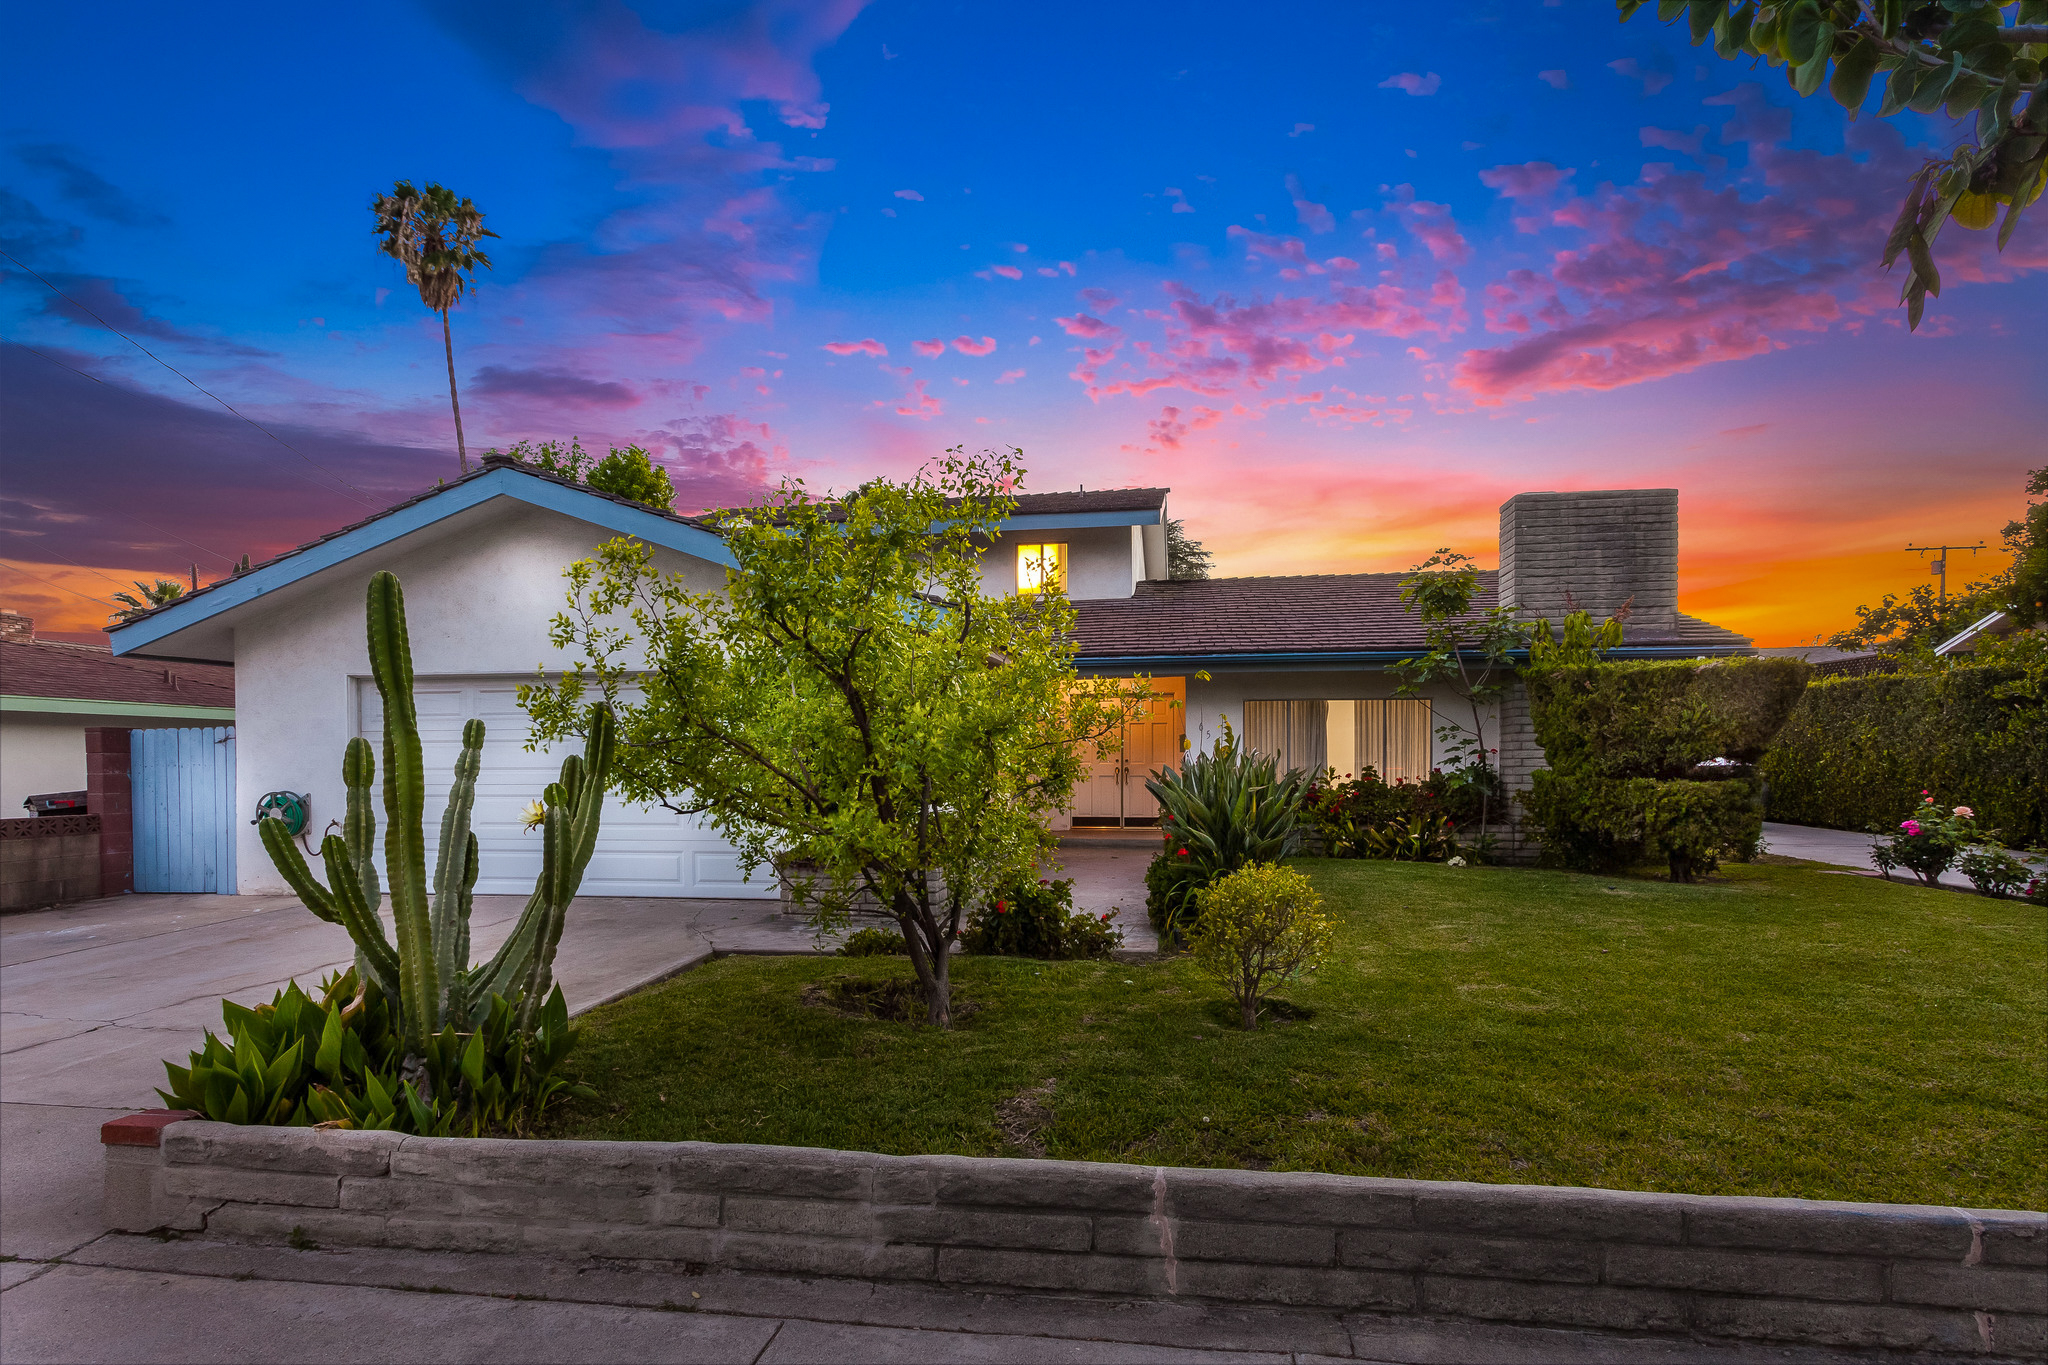 mls photography san gabriel